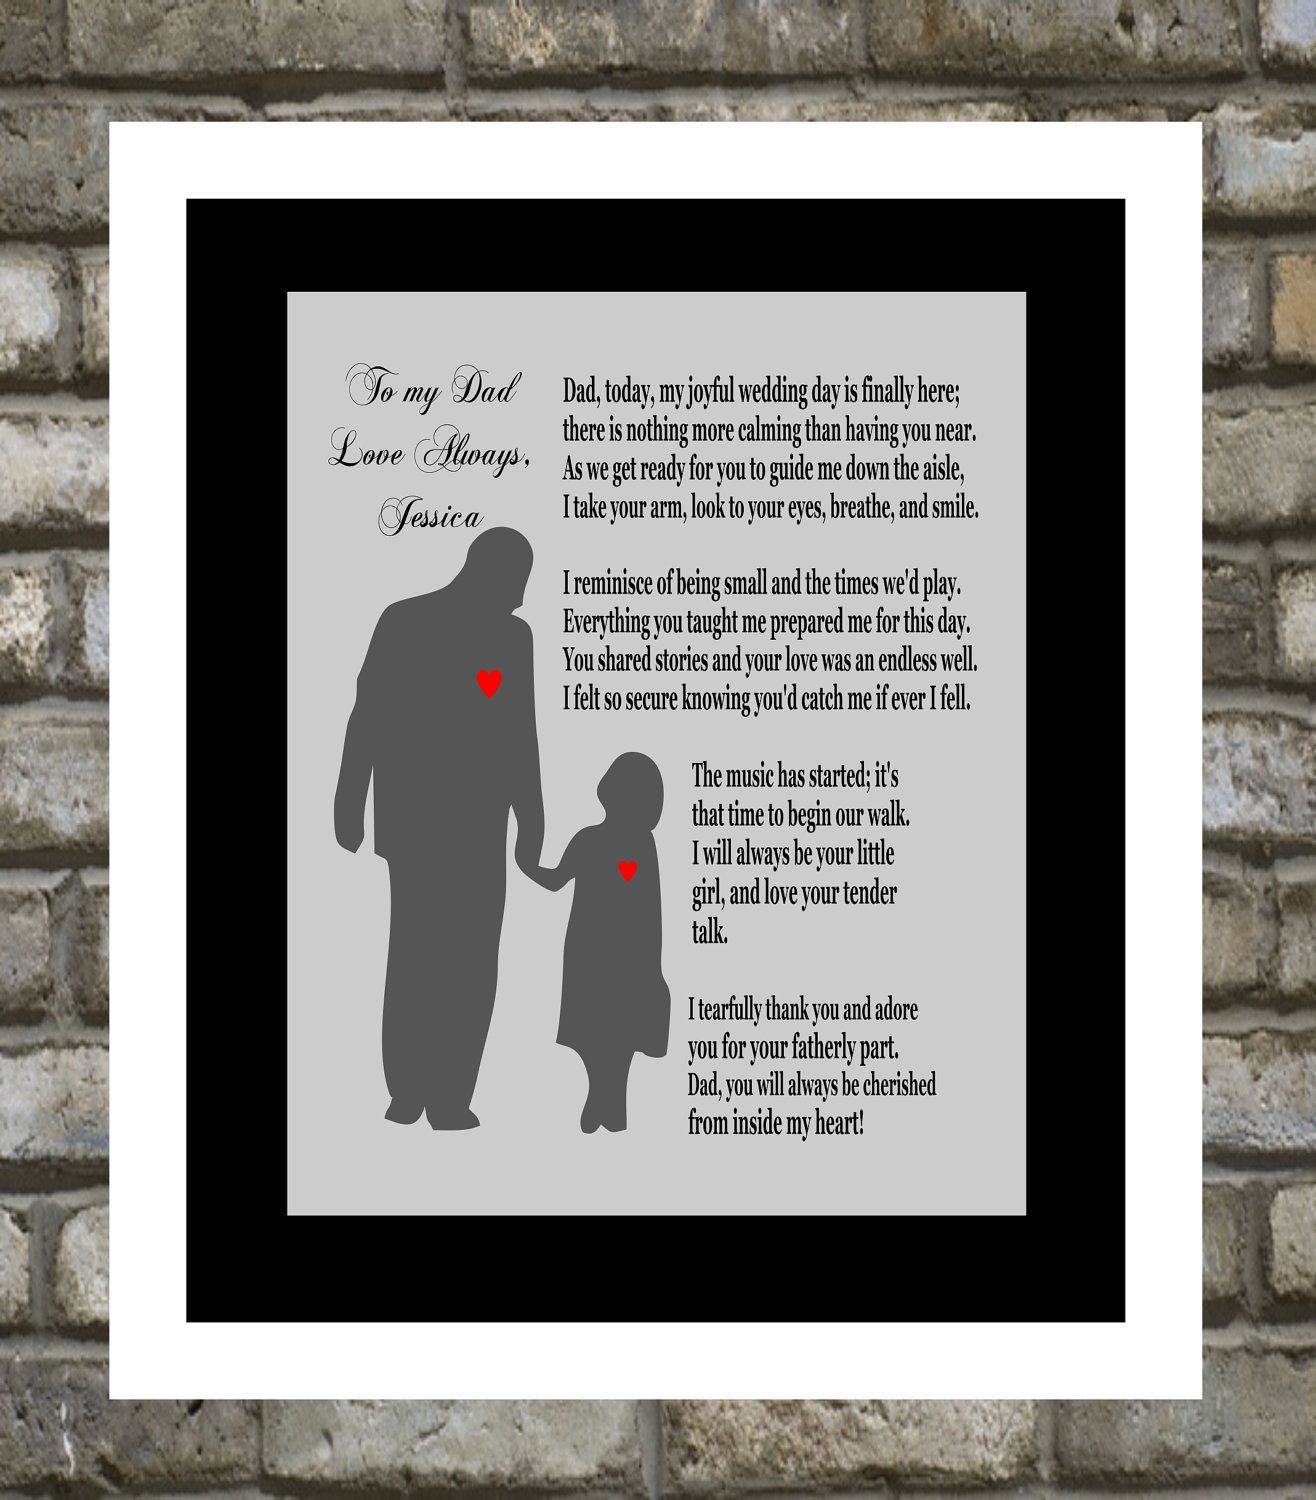 Wedding Gifts For Fathers: 1 Wedding Gift For Dad, Personalized Father Of The Bride